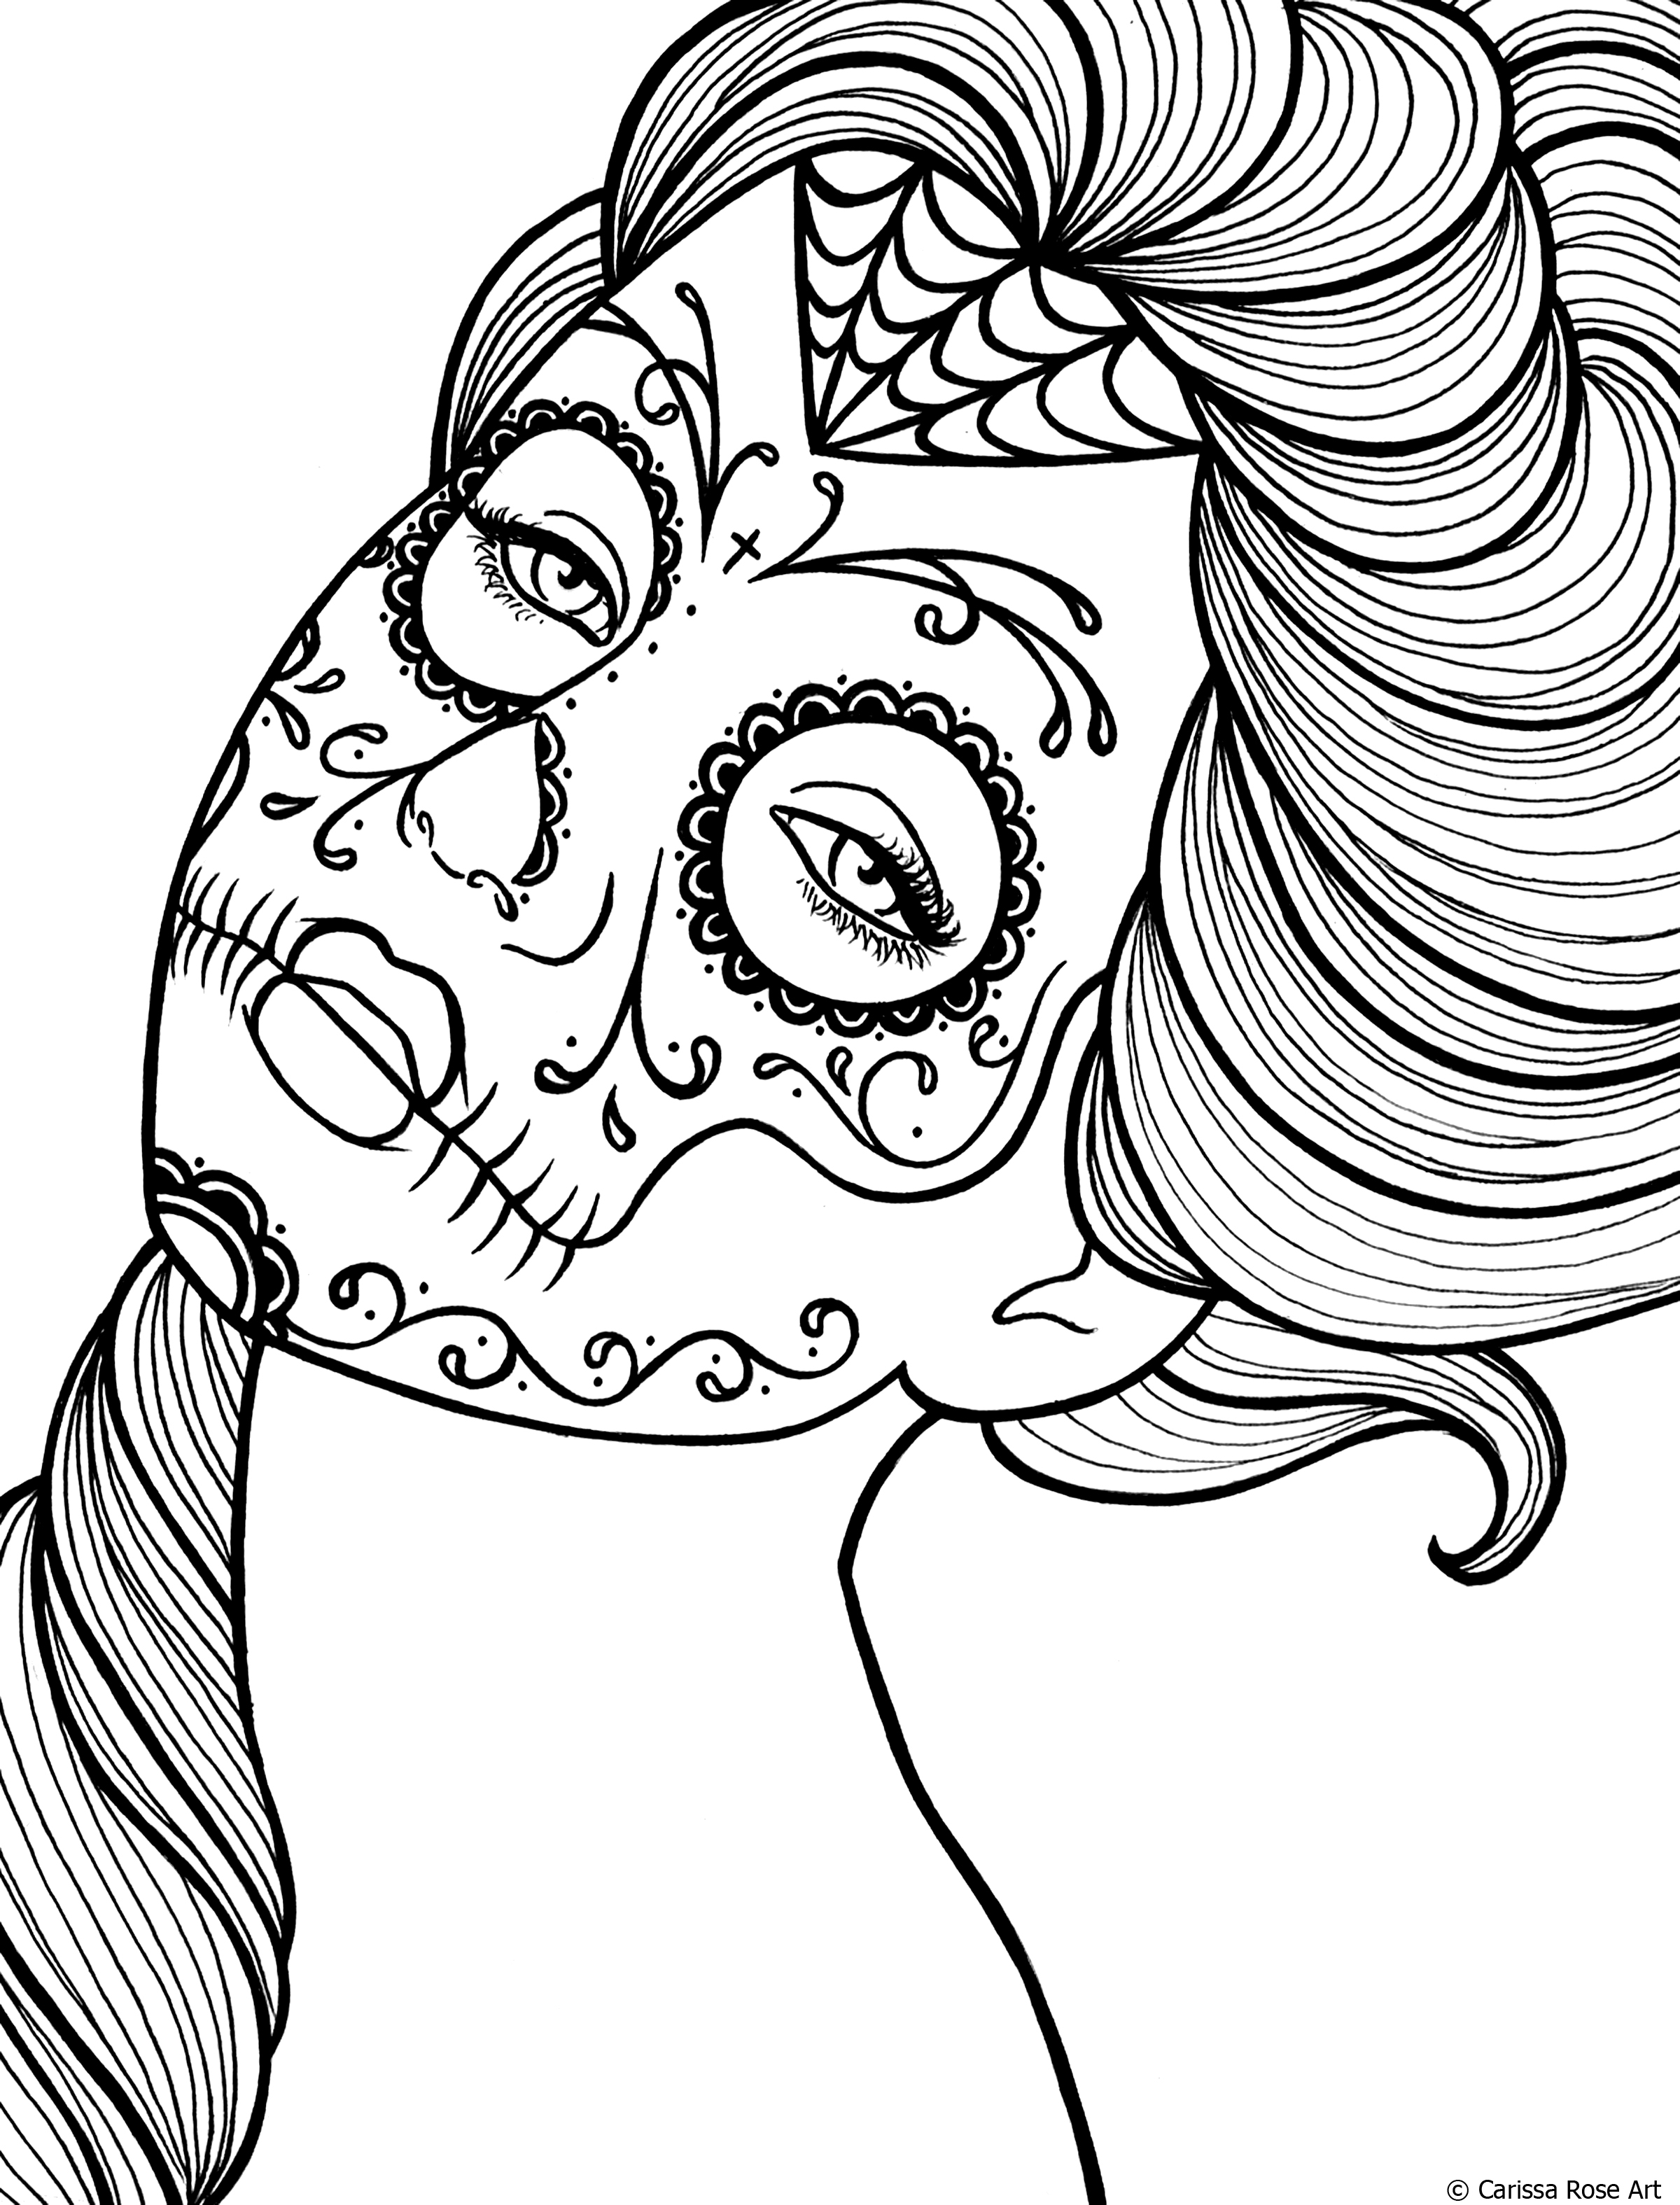 Free printable day of the dead coloring book page by for Printable skull coloring pages for adults